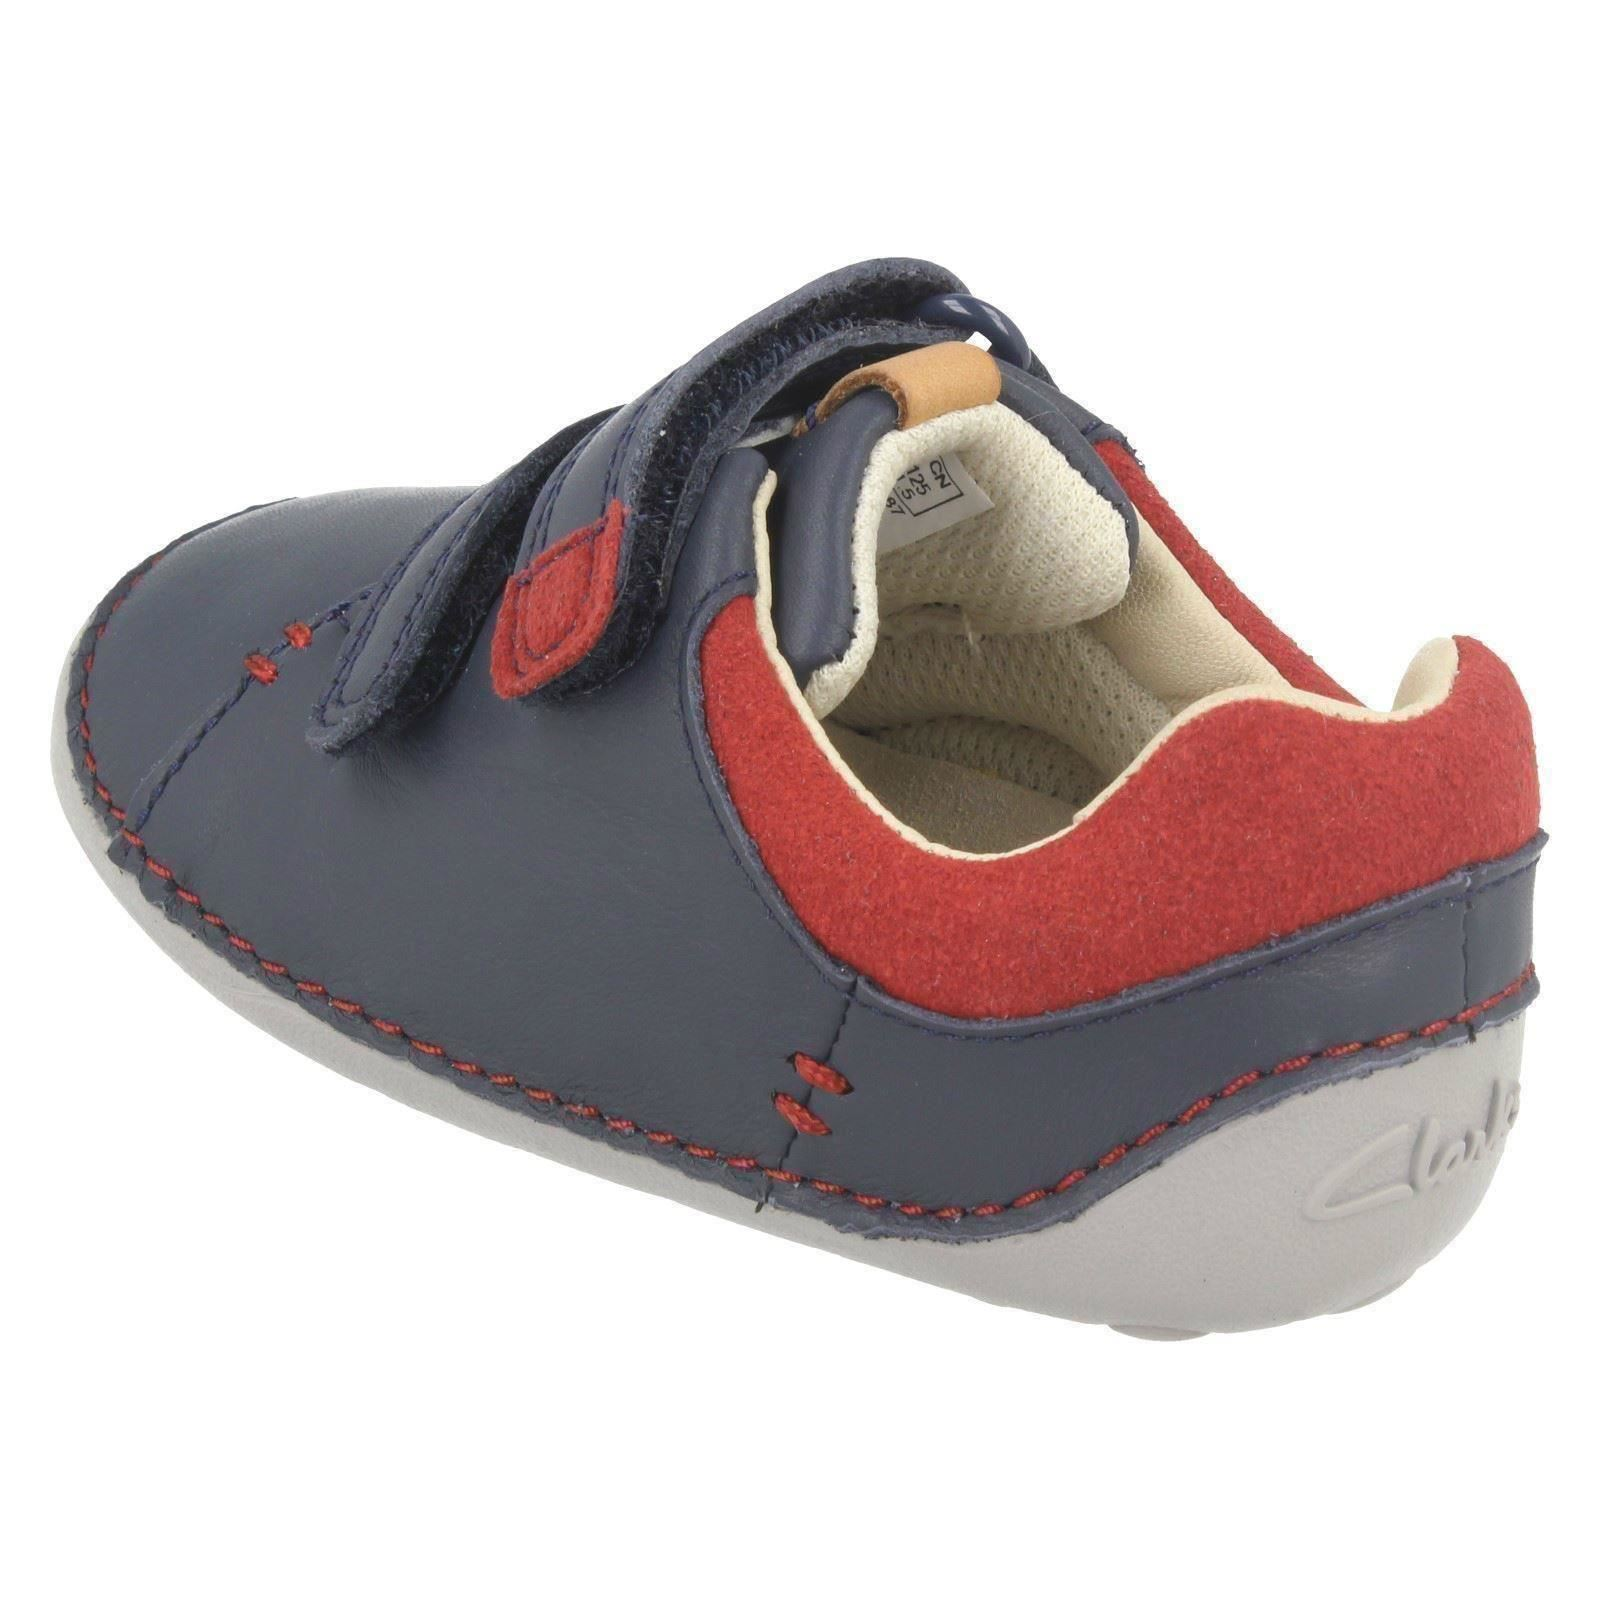 Clarks Boys First Shoes - Tiny Toby